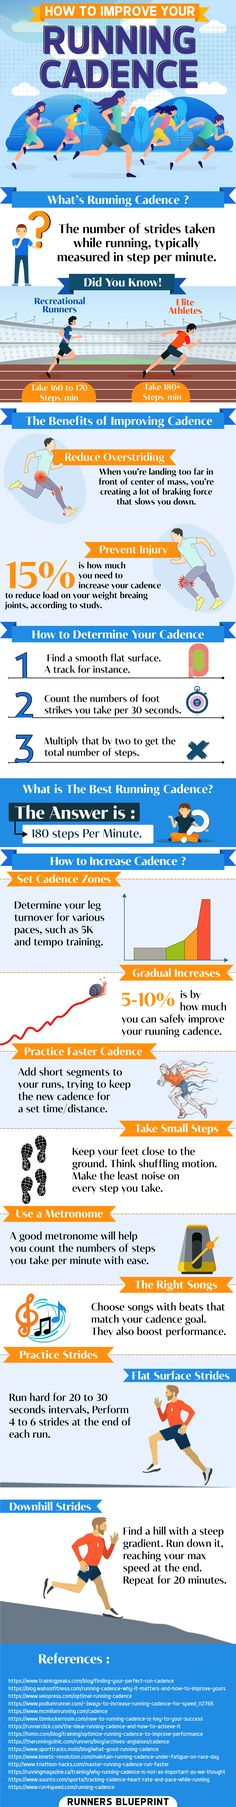 One of the fastest ways to improve your running speed and performance is through improving cadence. Yes, it's such an important aspect of efficient running. And today you're in luck.  In this infographic, I'm delving into the main ways you can go about improving your running cadence in an easy and injury-free way.  Enjoy! Running On Treadmill, Running Workouts, Running Hacks, Running Gear, Marathon Tips, Half Marathon Training, Long Distance Running Tips, Running Motivation